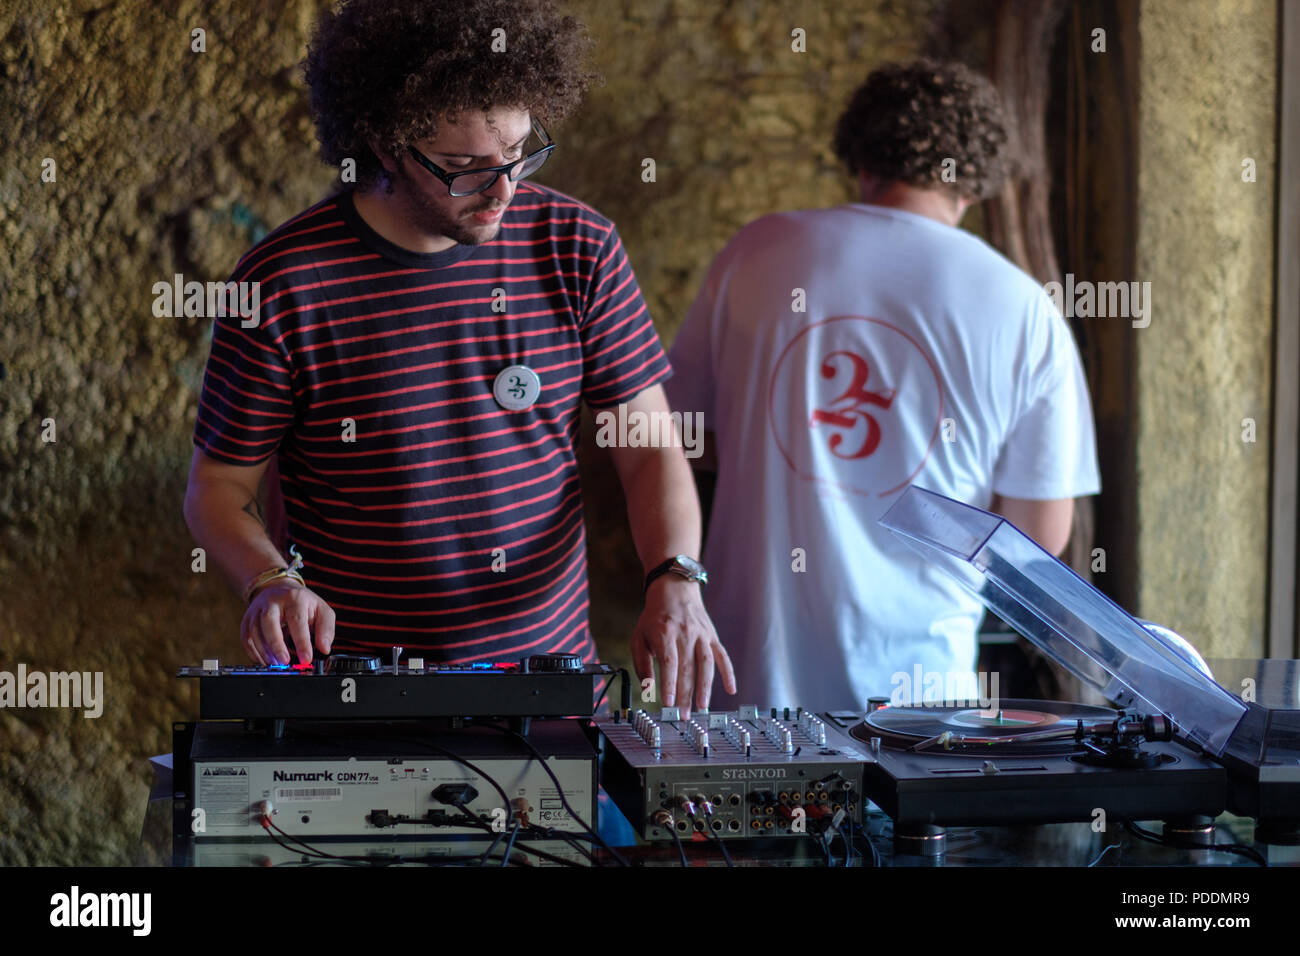 DJ playing music at a party - Stock Image